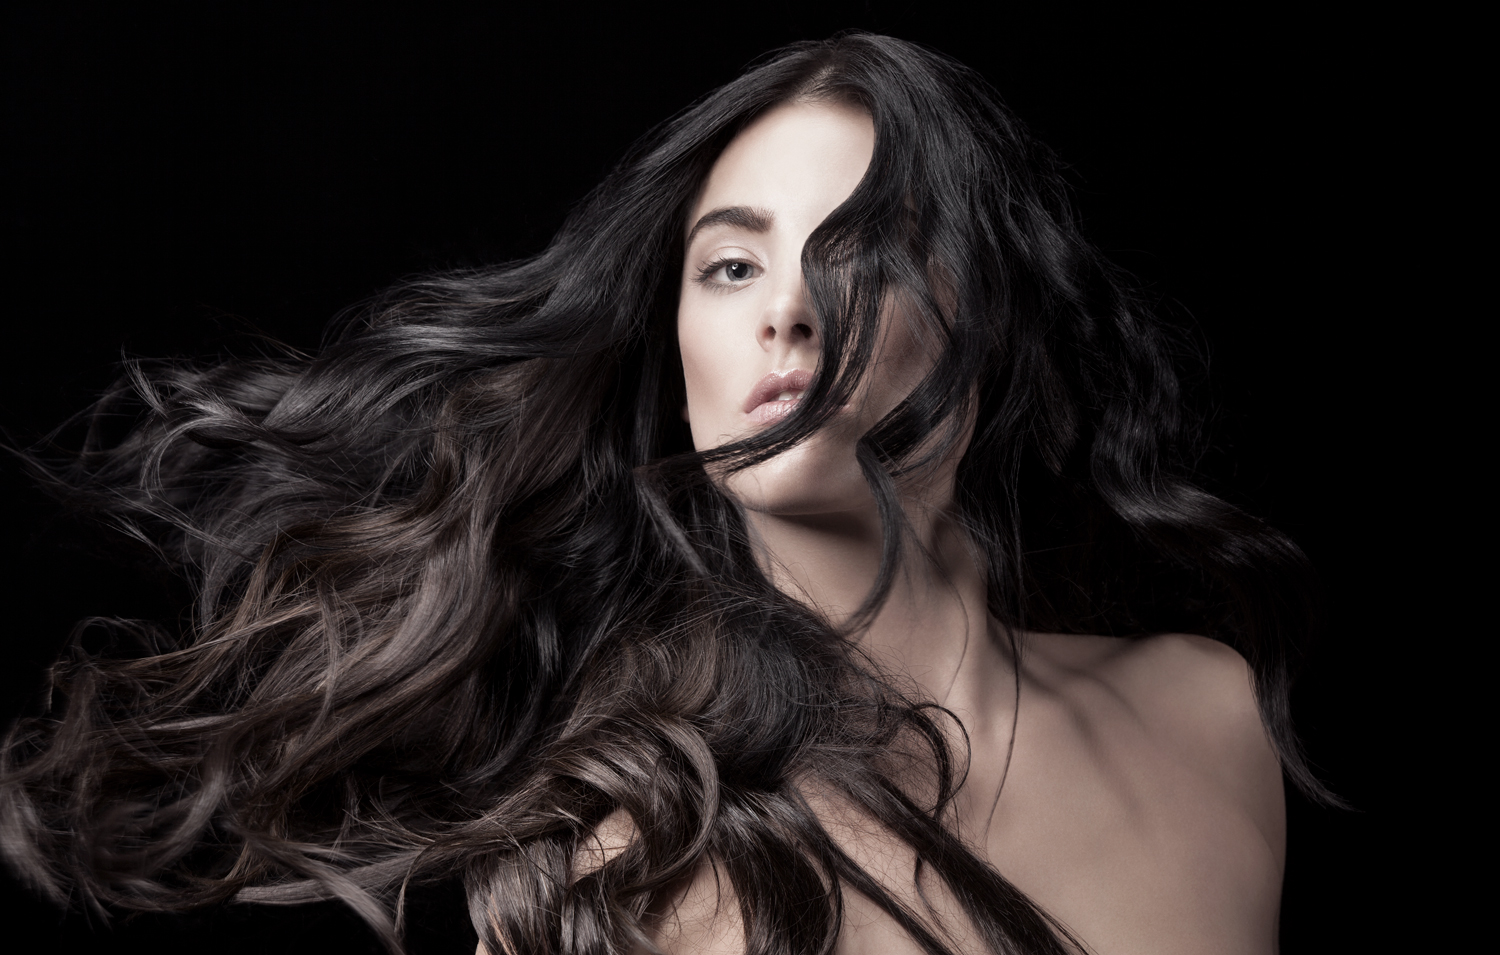 ZEN HAIR - Zen Hair sources, processes and uses the world's premium human hair for it's hair extensions systems. Found in the UK's most discerning salons. Client since 2013.